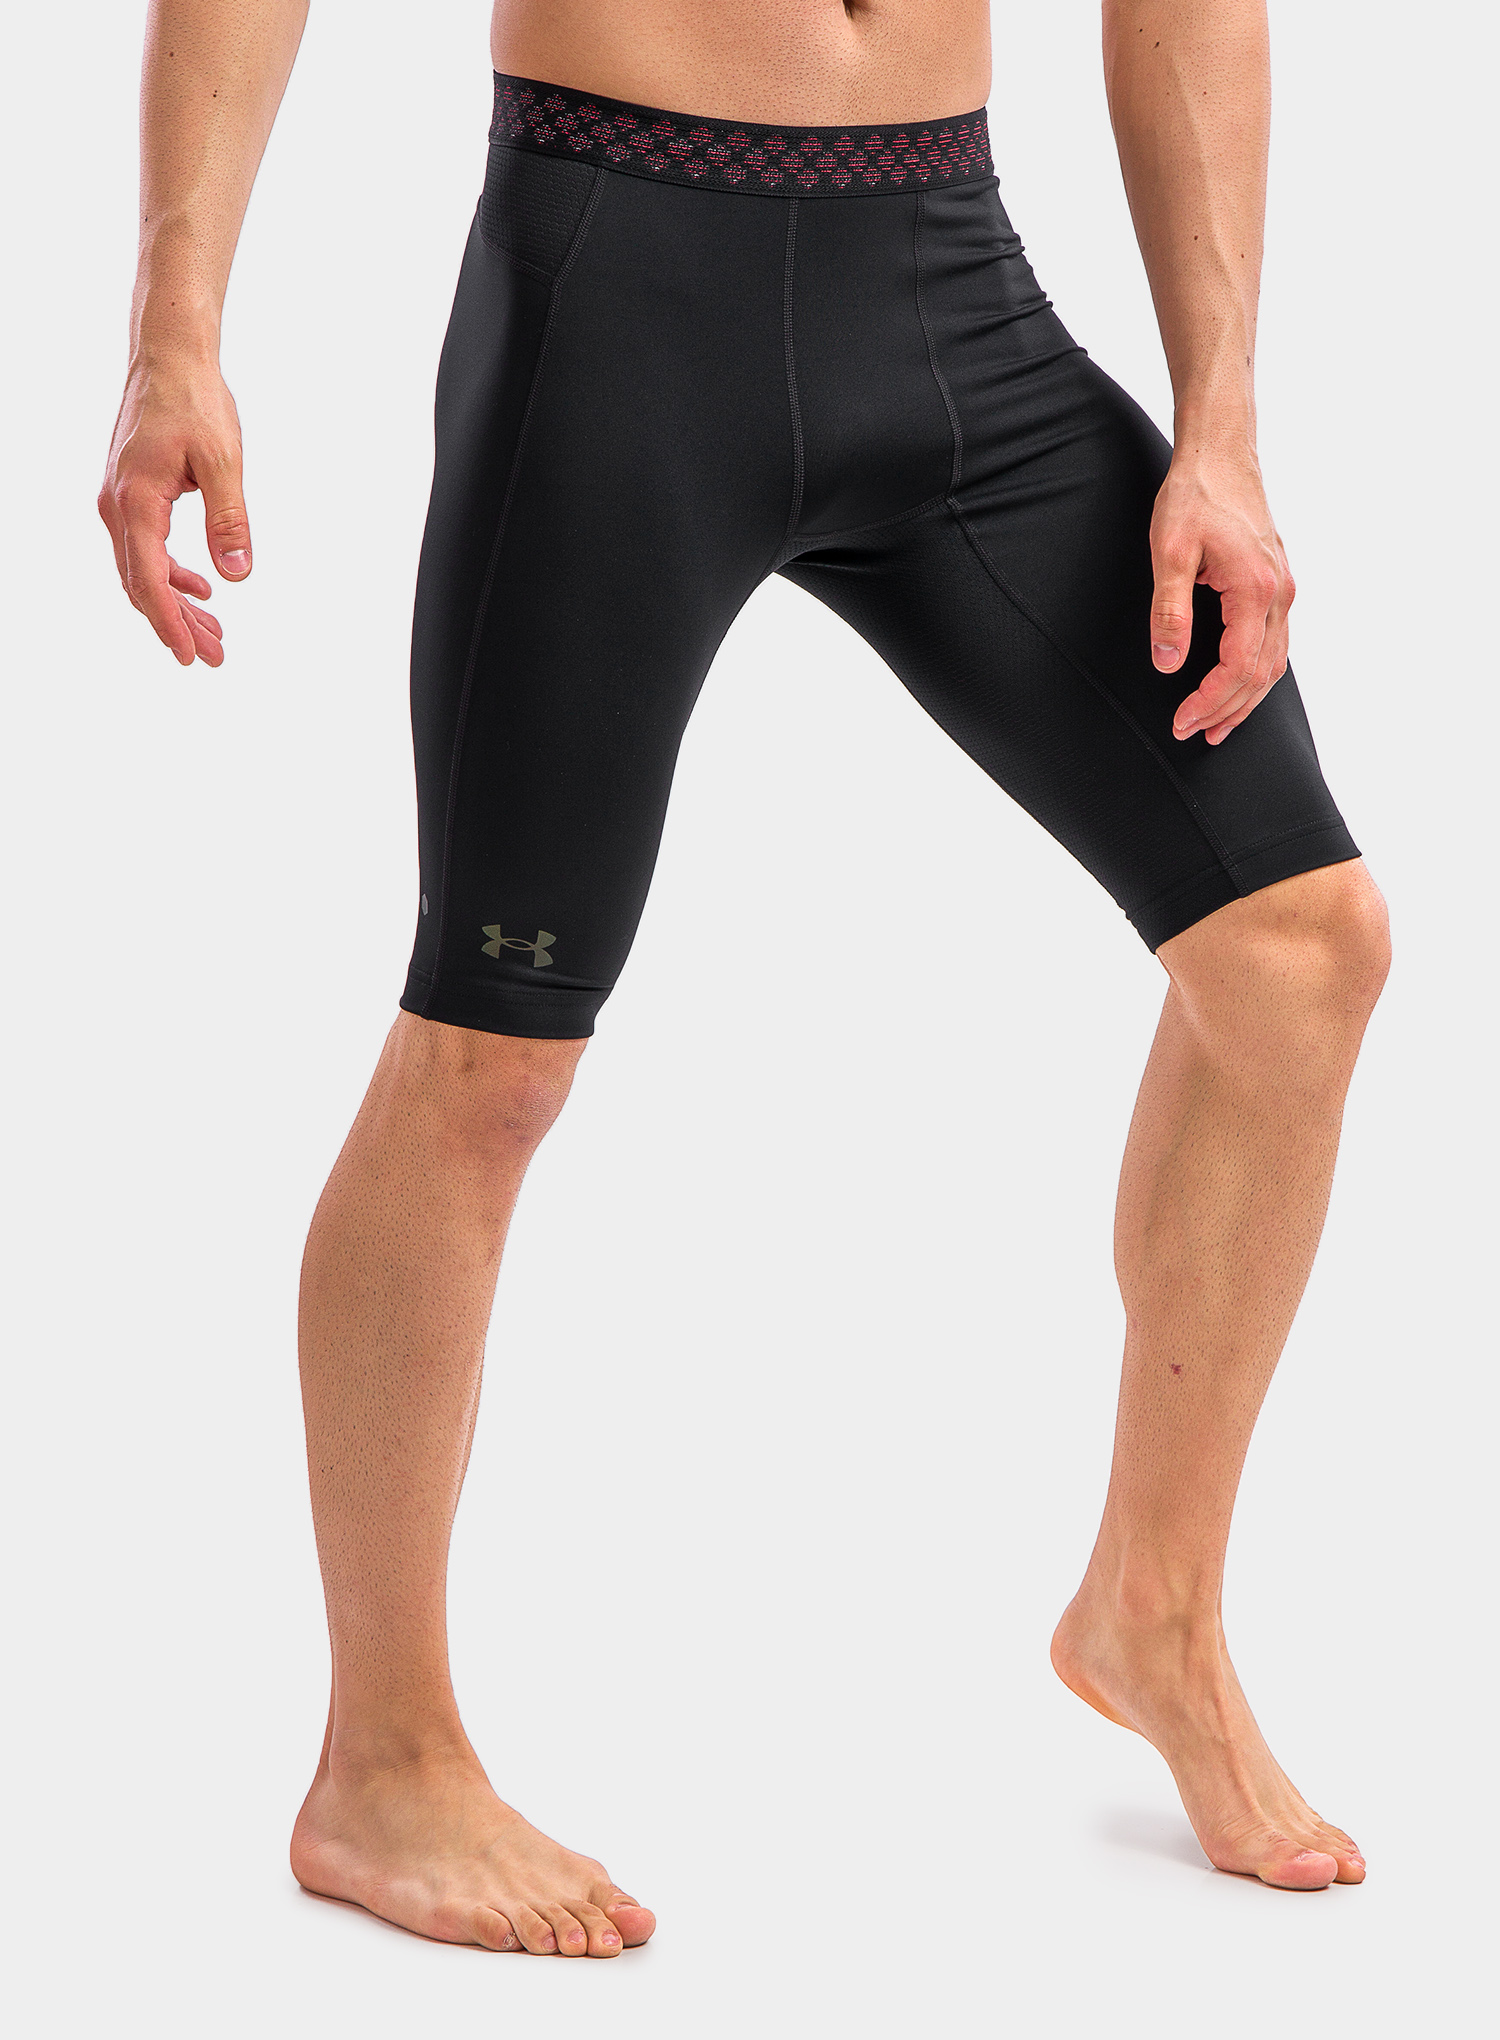 Spodenki Under Armour HG Rush 2.0 Long Shorts - black/black - zdjęcie nr. 3